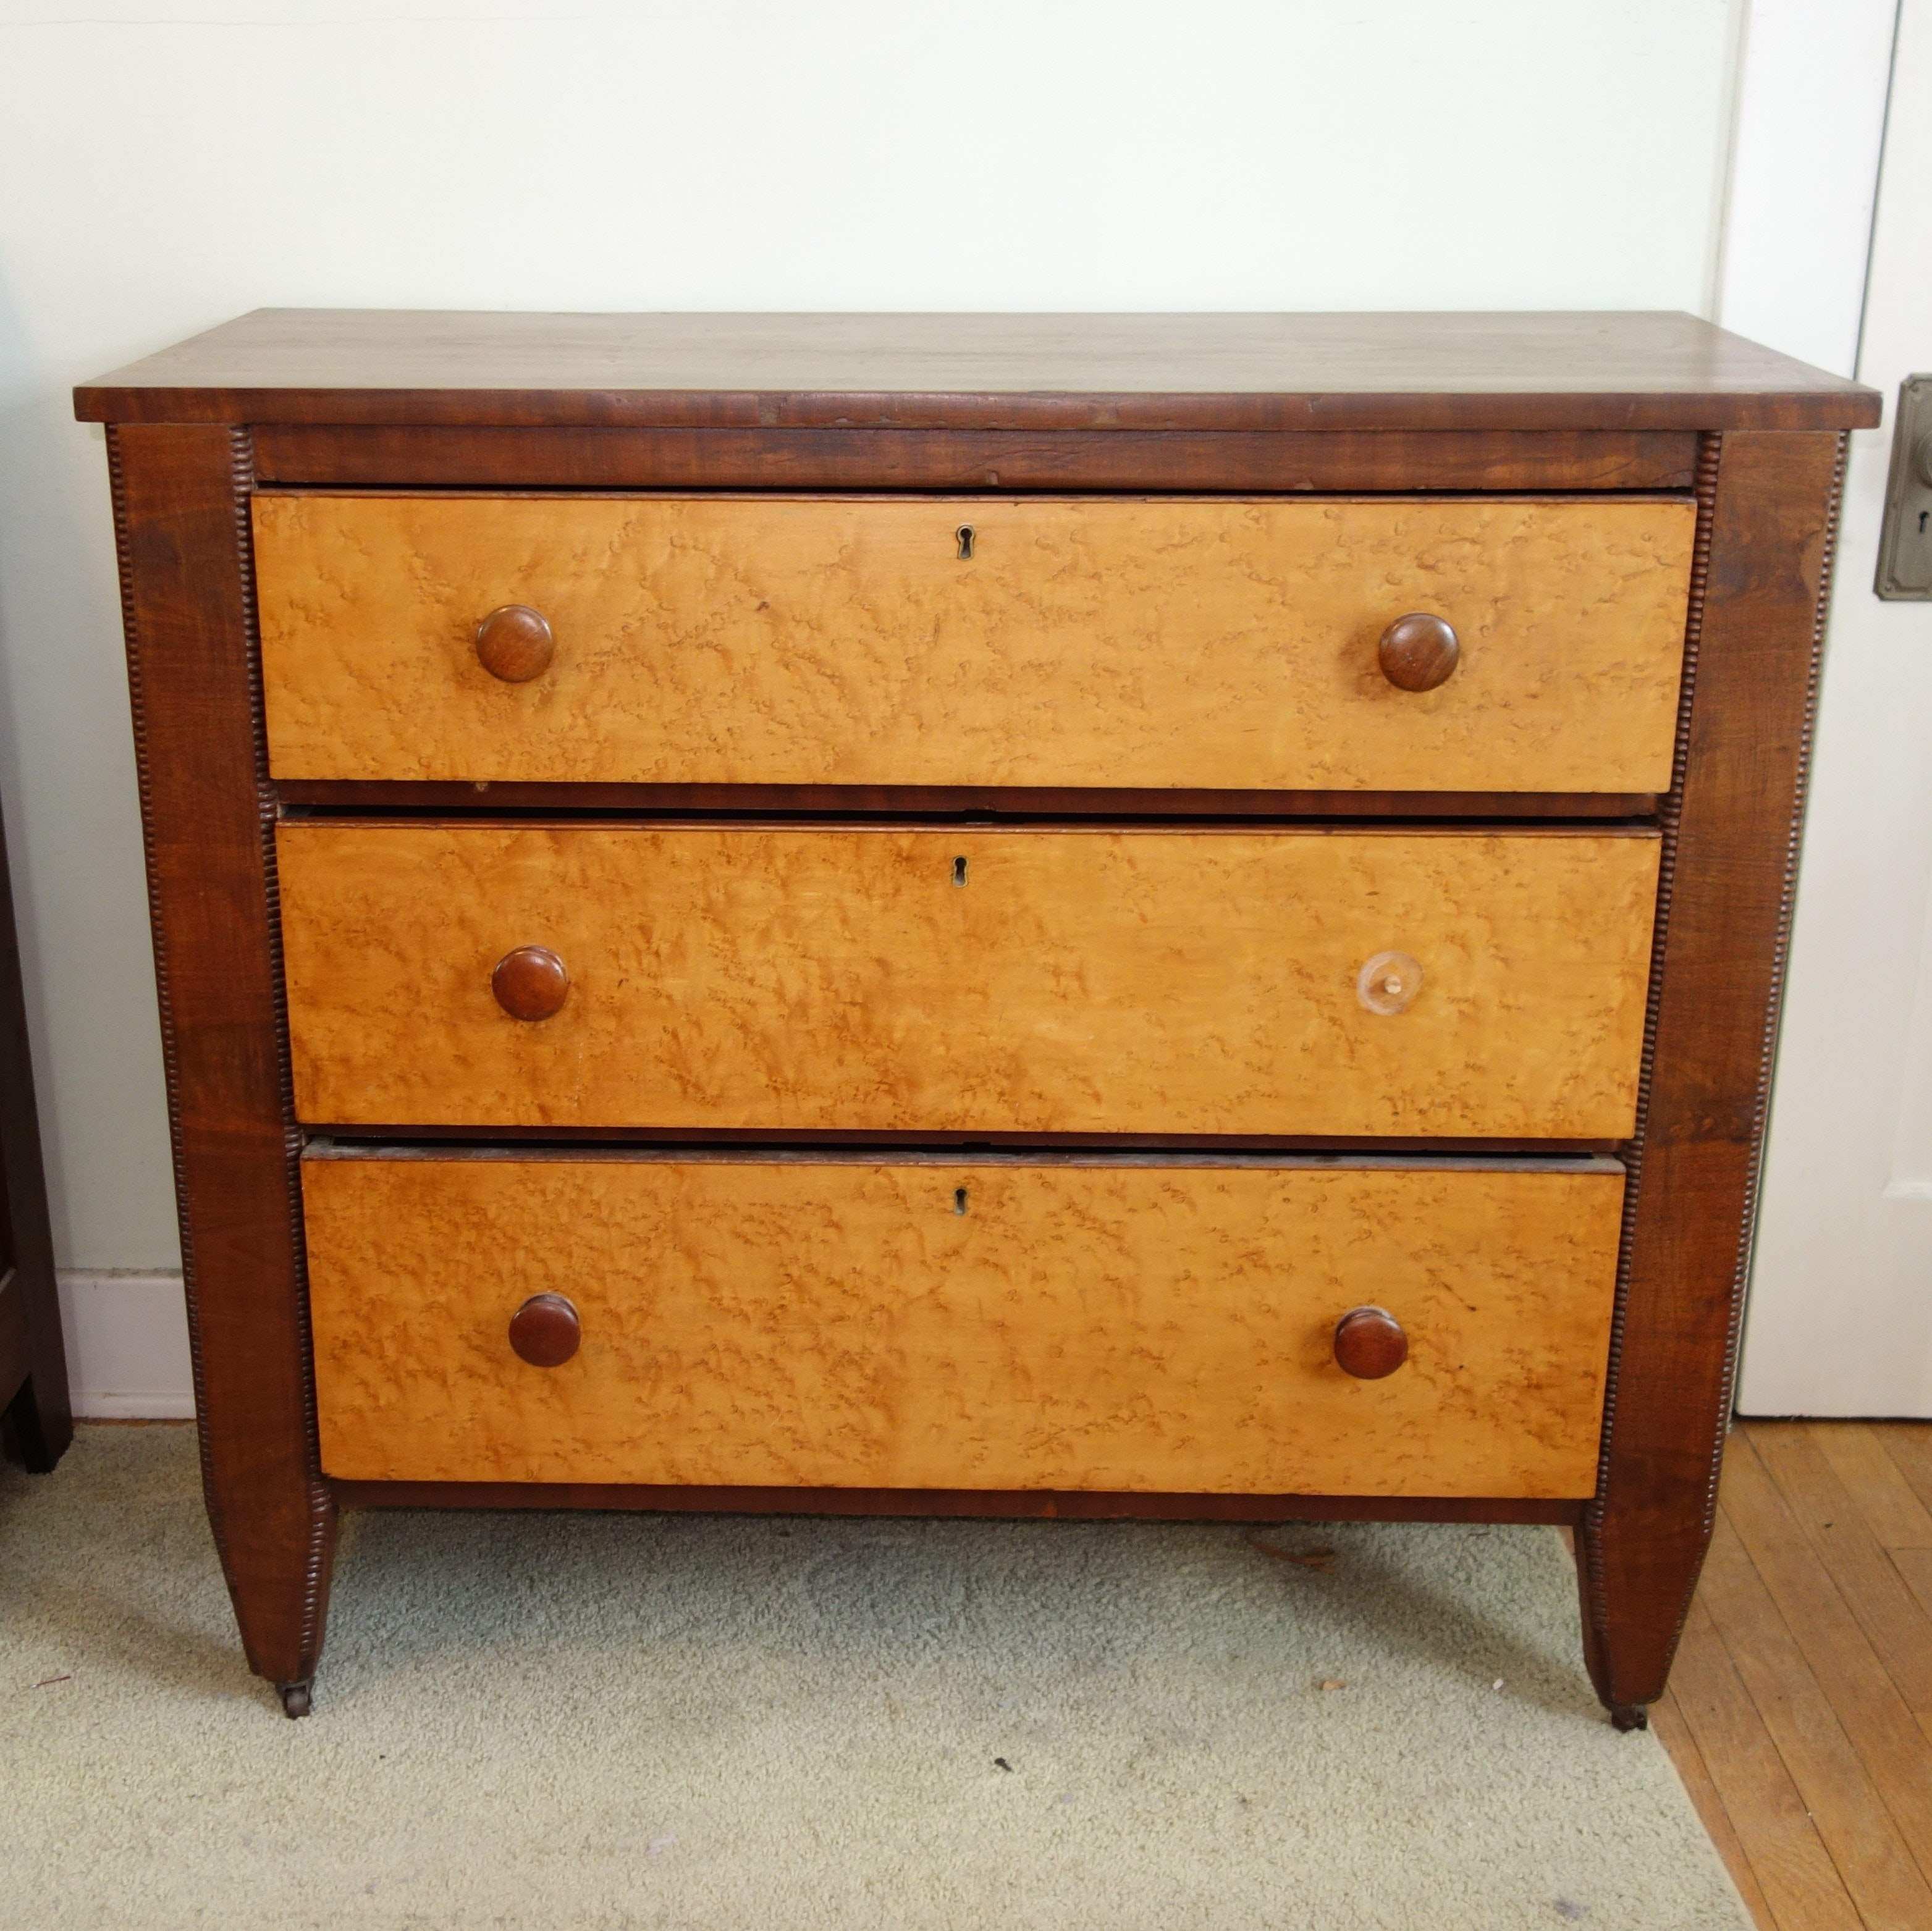 19th Century American Maple And Cherry Chest of Drawers